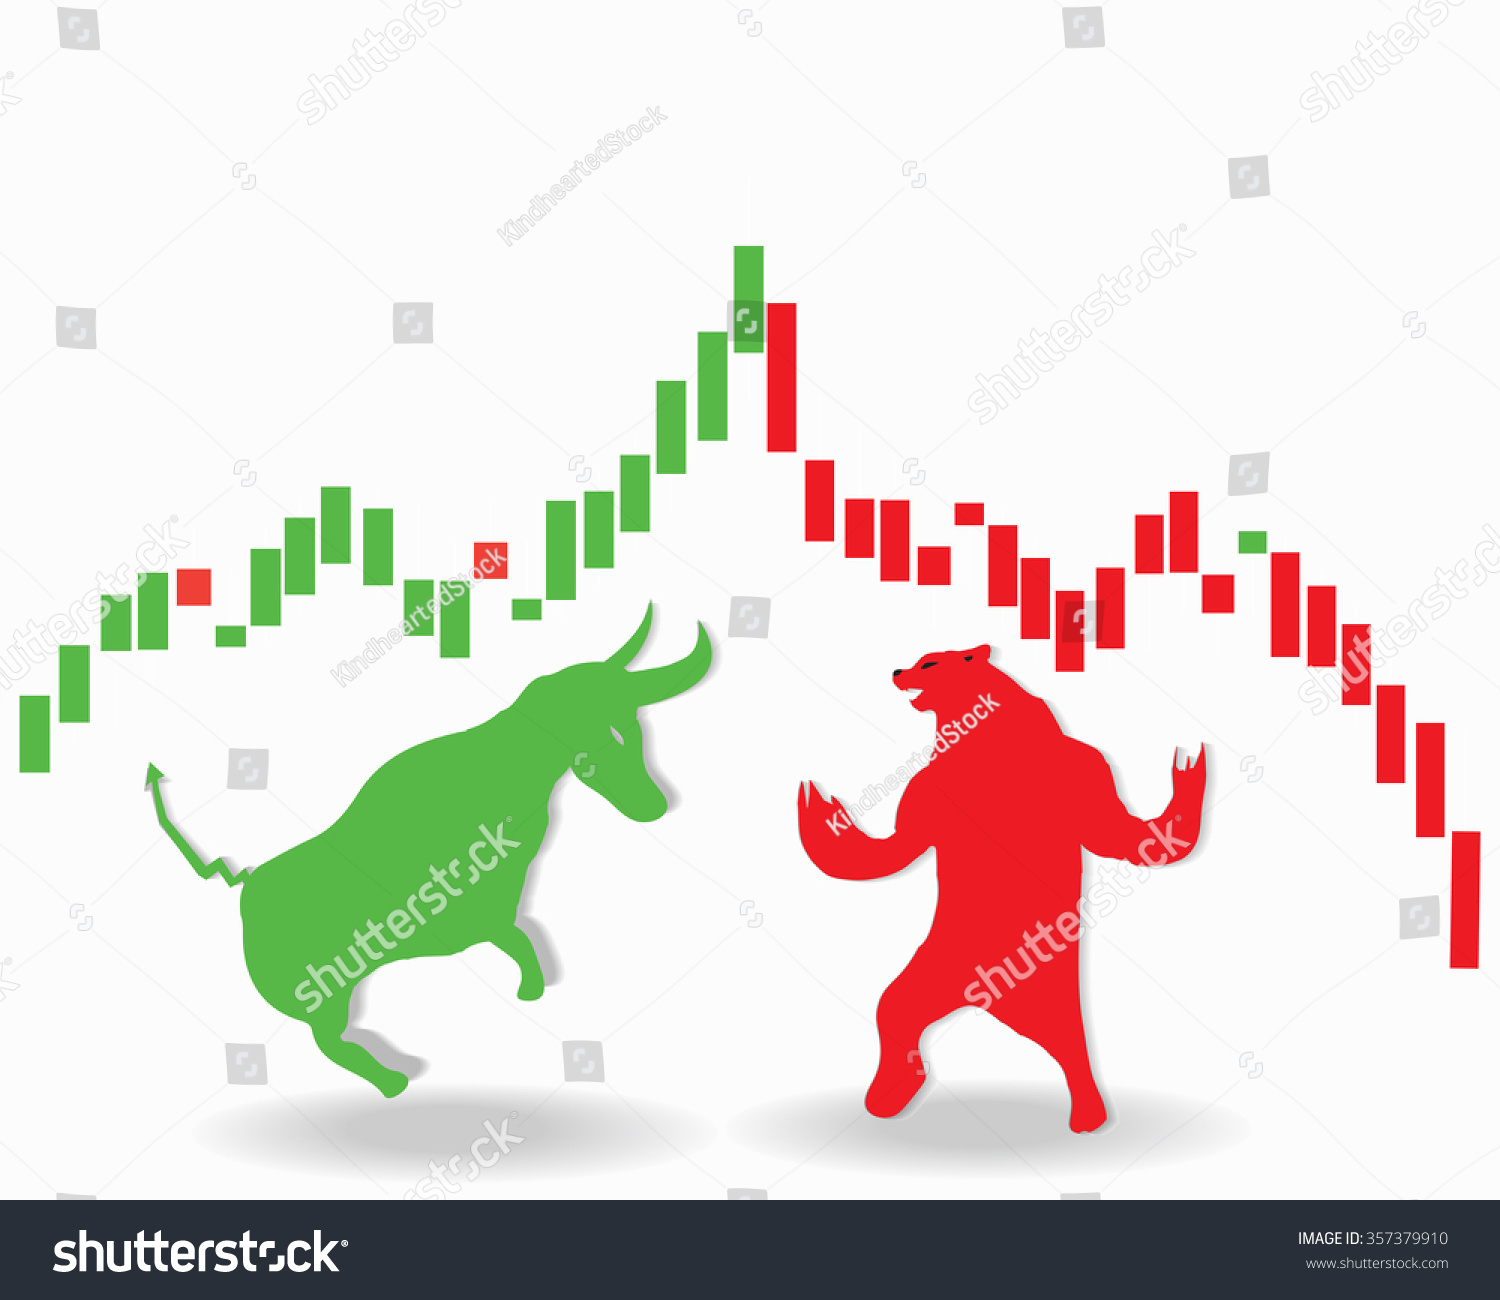 Stock market concept animal symbols buy stock vector 357379910 stock market concept of the animal symbols for buy and sell as a bull and bear buycottarizona